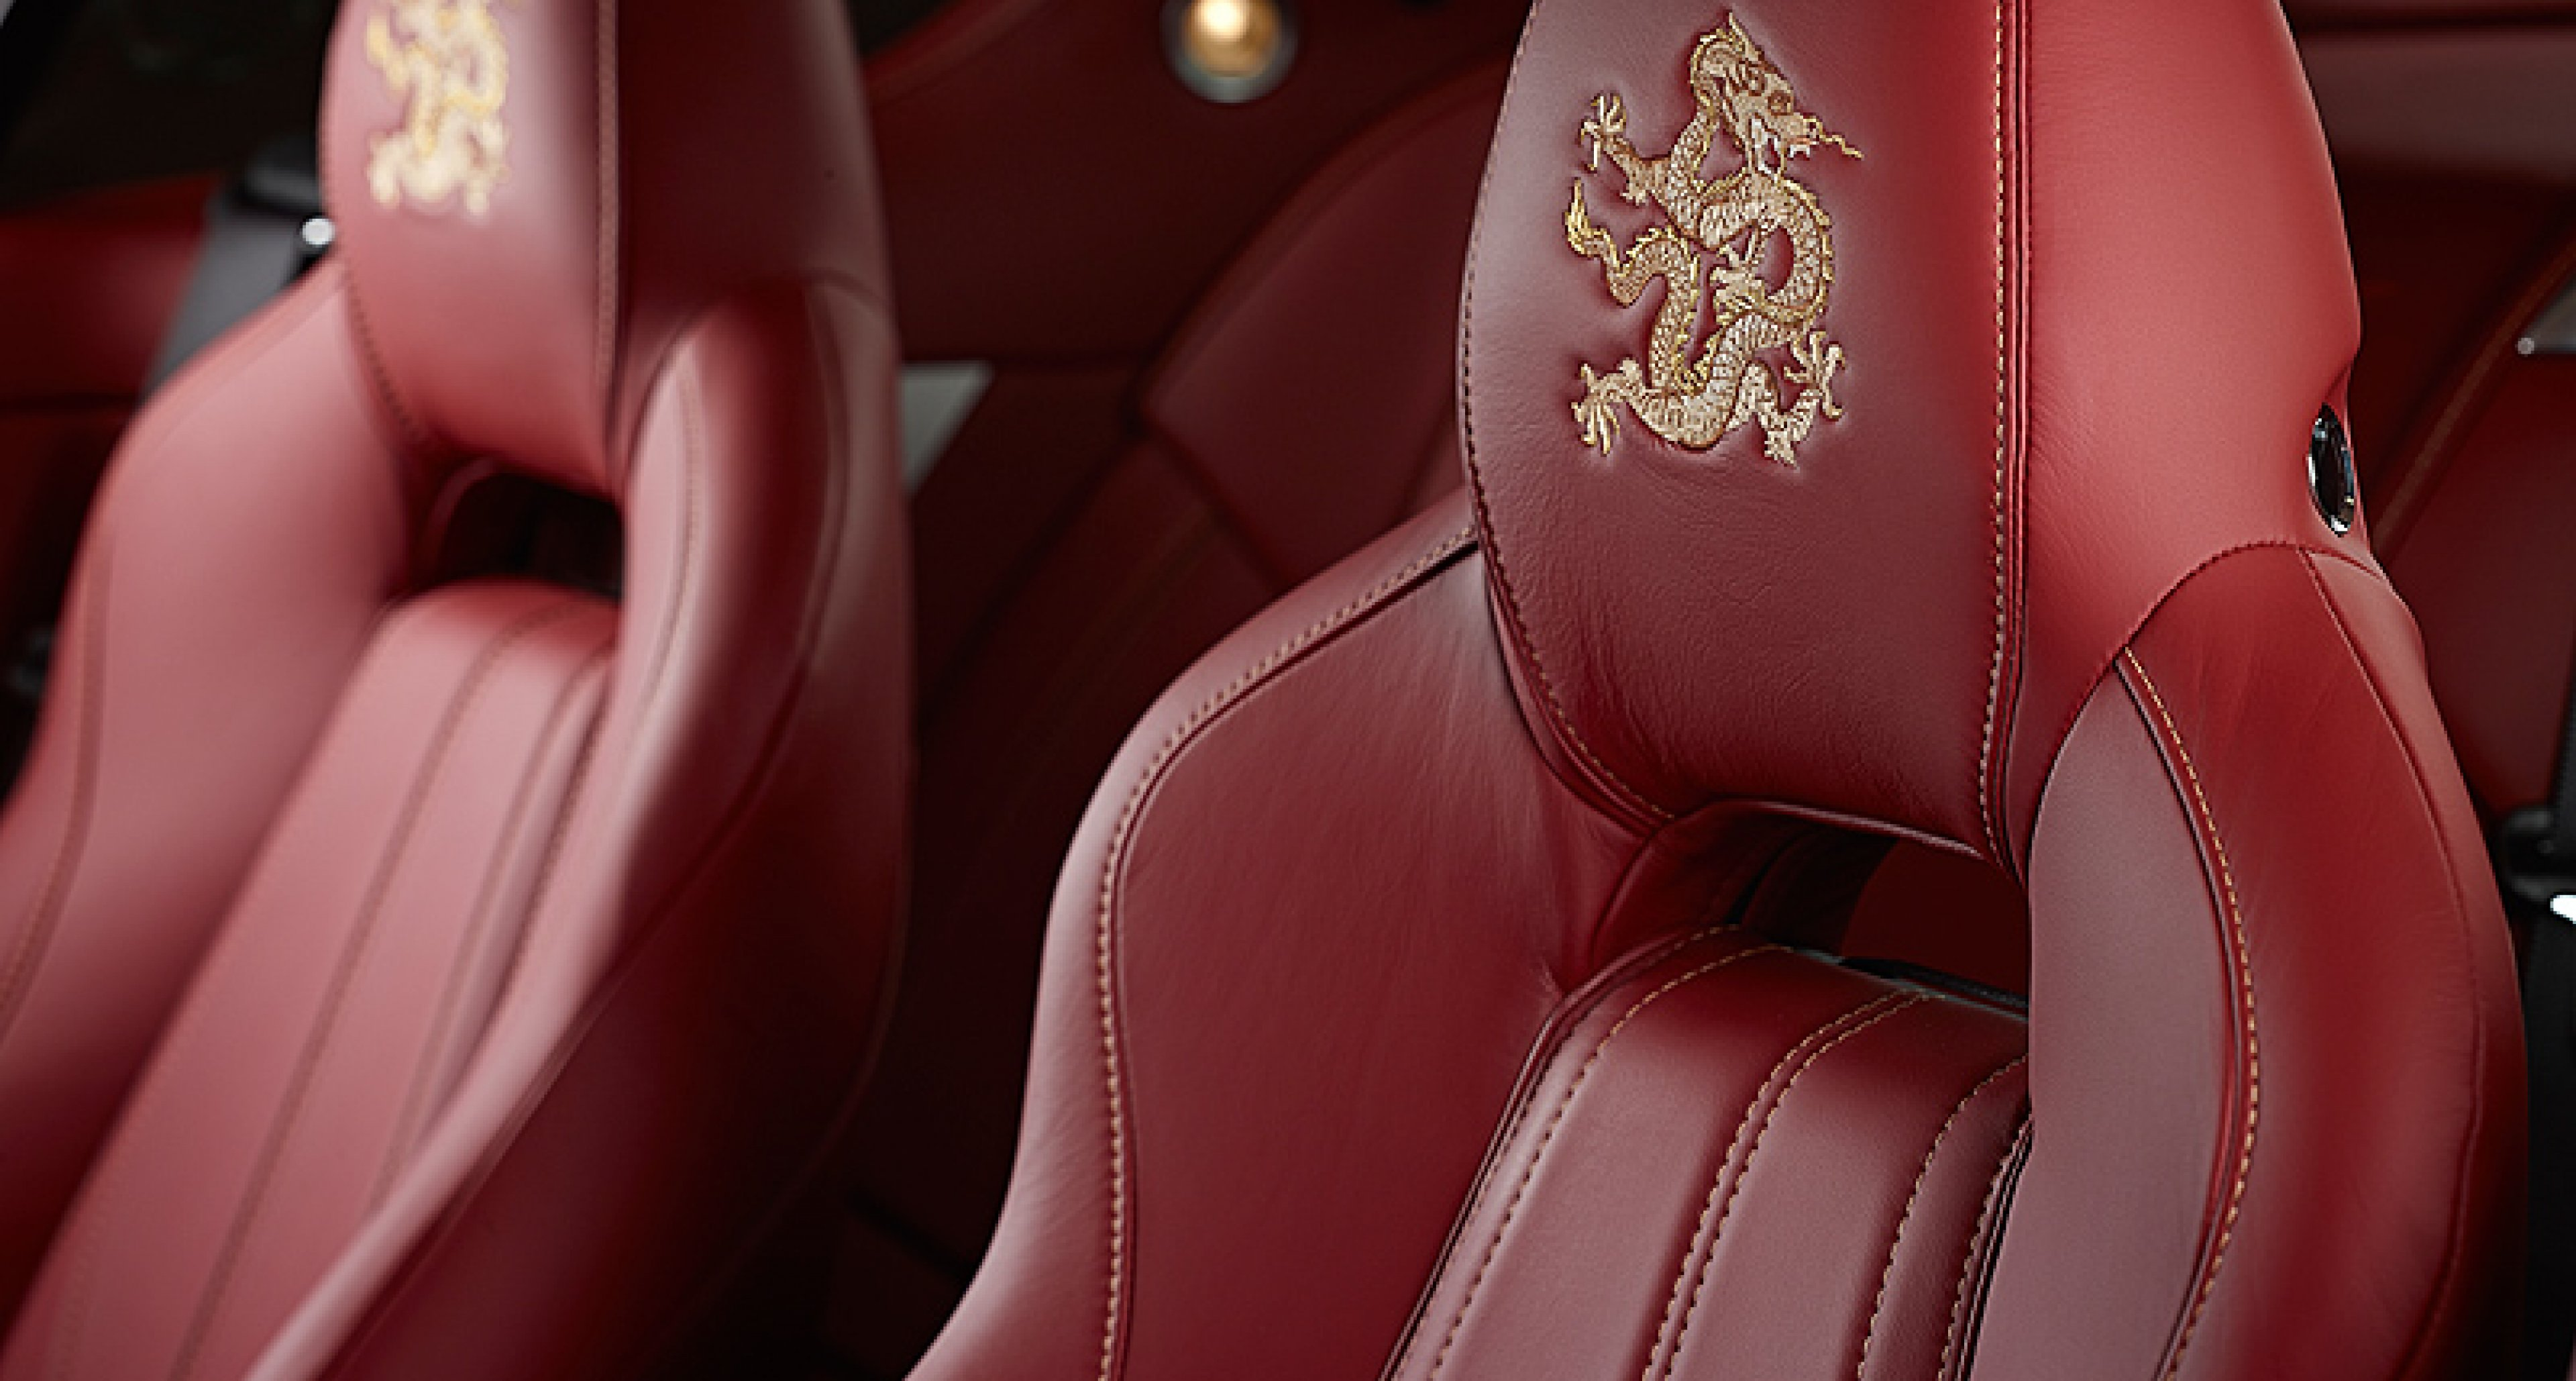 Aston Martin Dragon 88 Limited Editions: Enter the Dragon